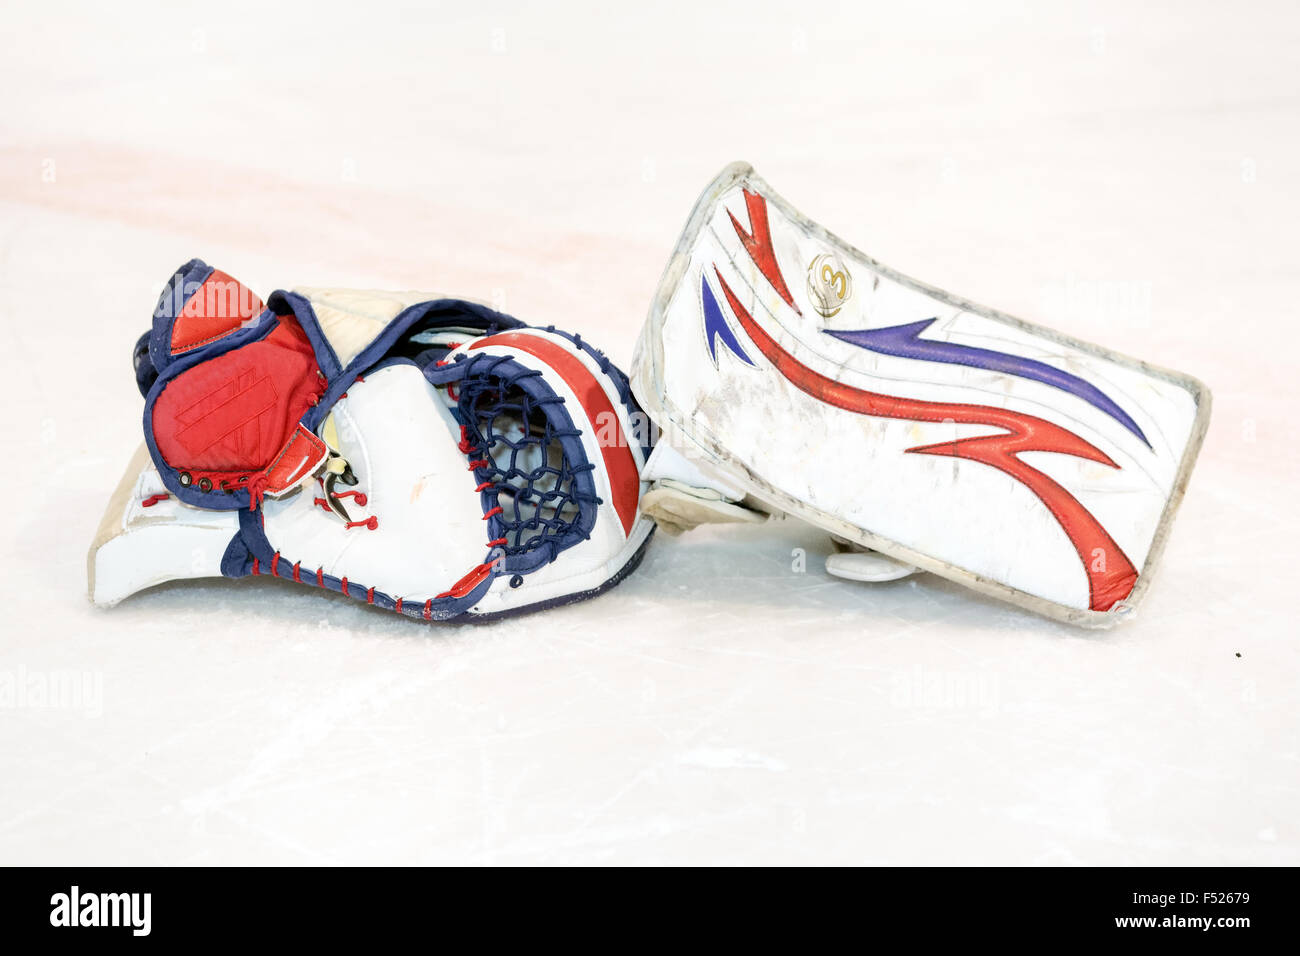 White goalkeeper gloves discarded on the ice - Stock Image